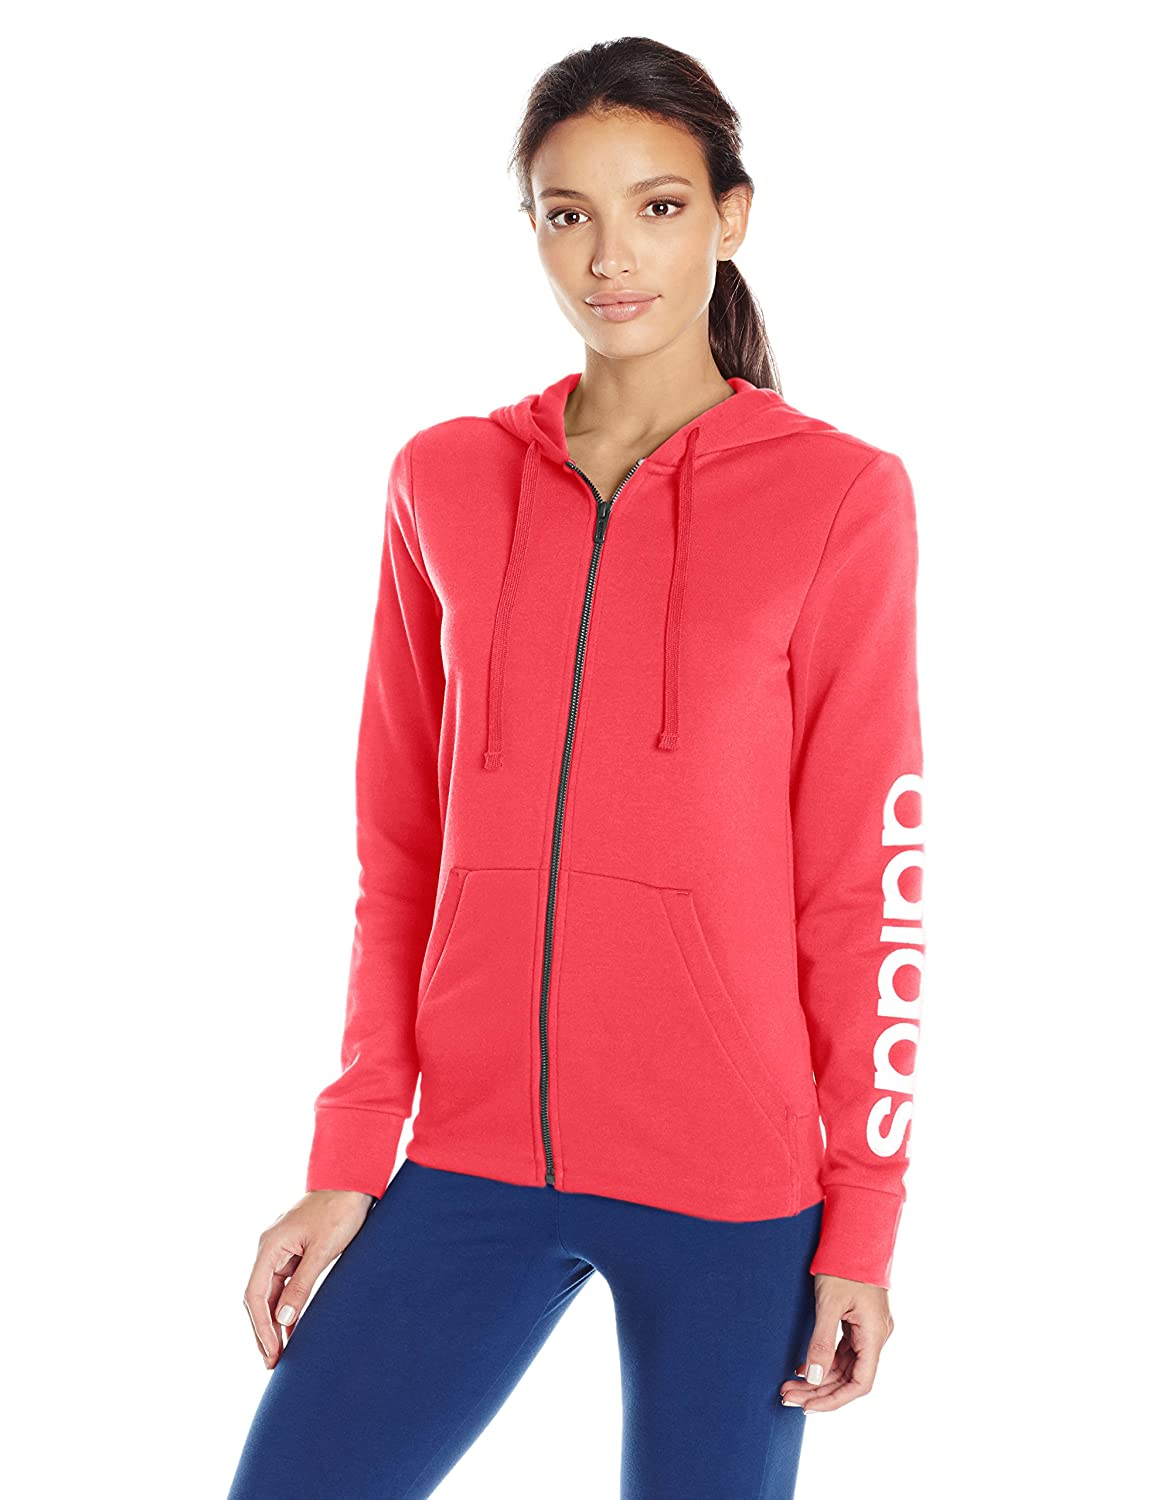 Real Coral White adidas Women's Linear FullZip Hoodie